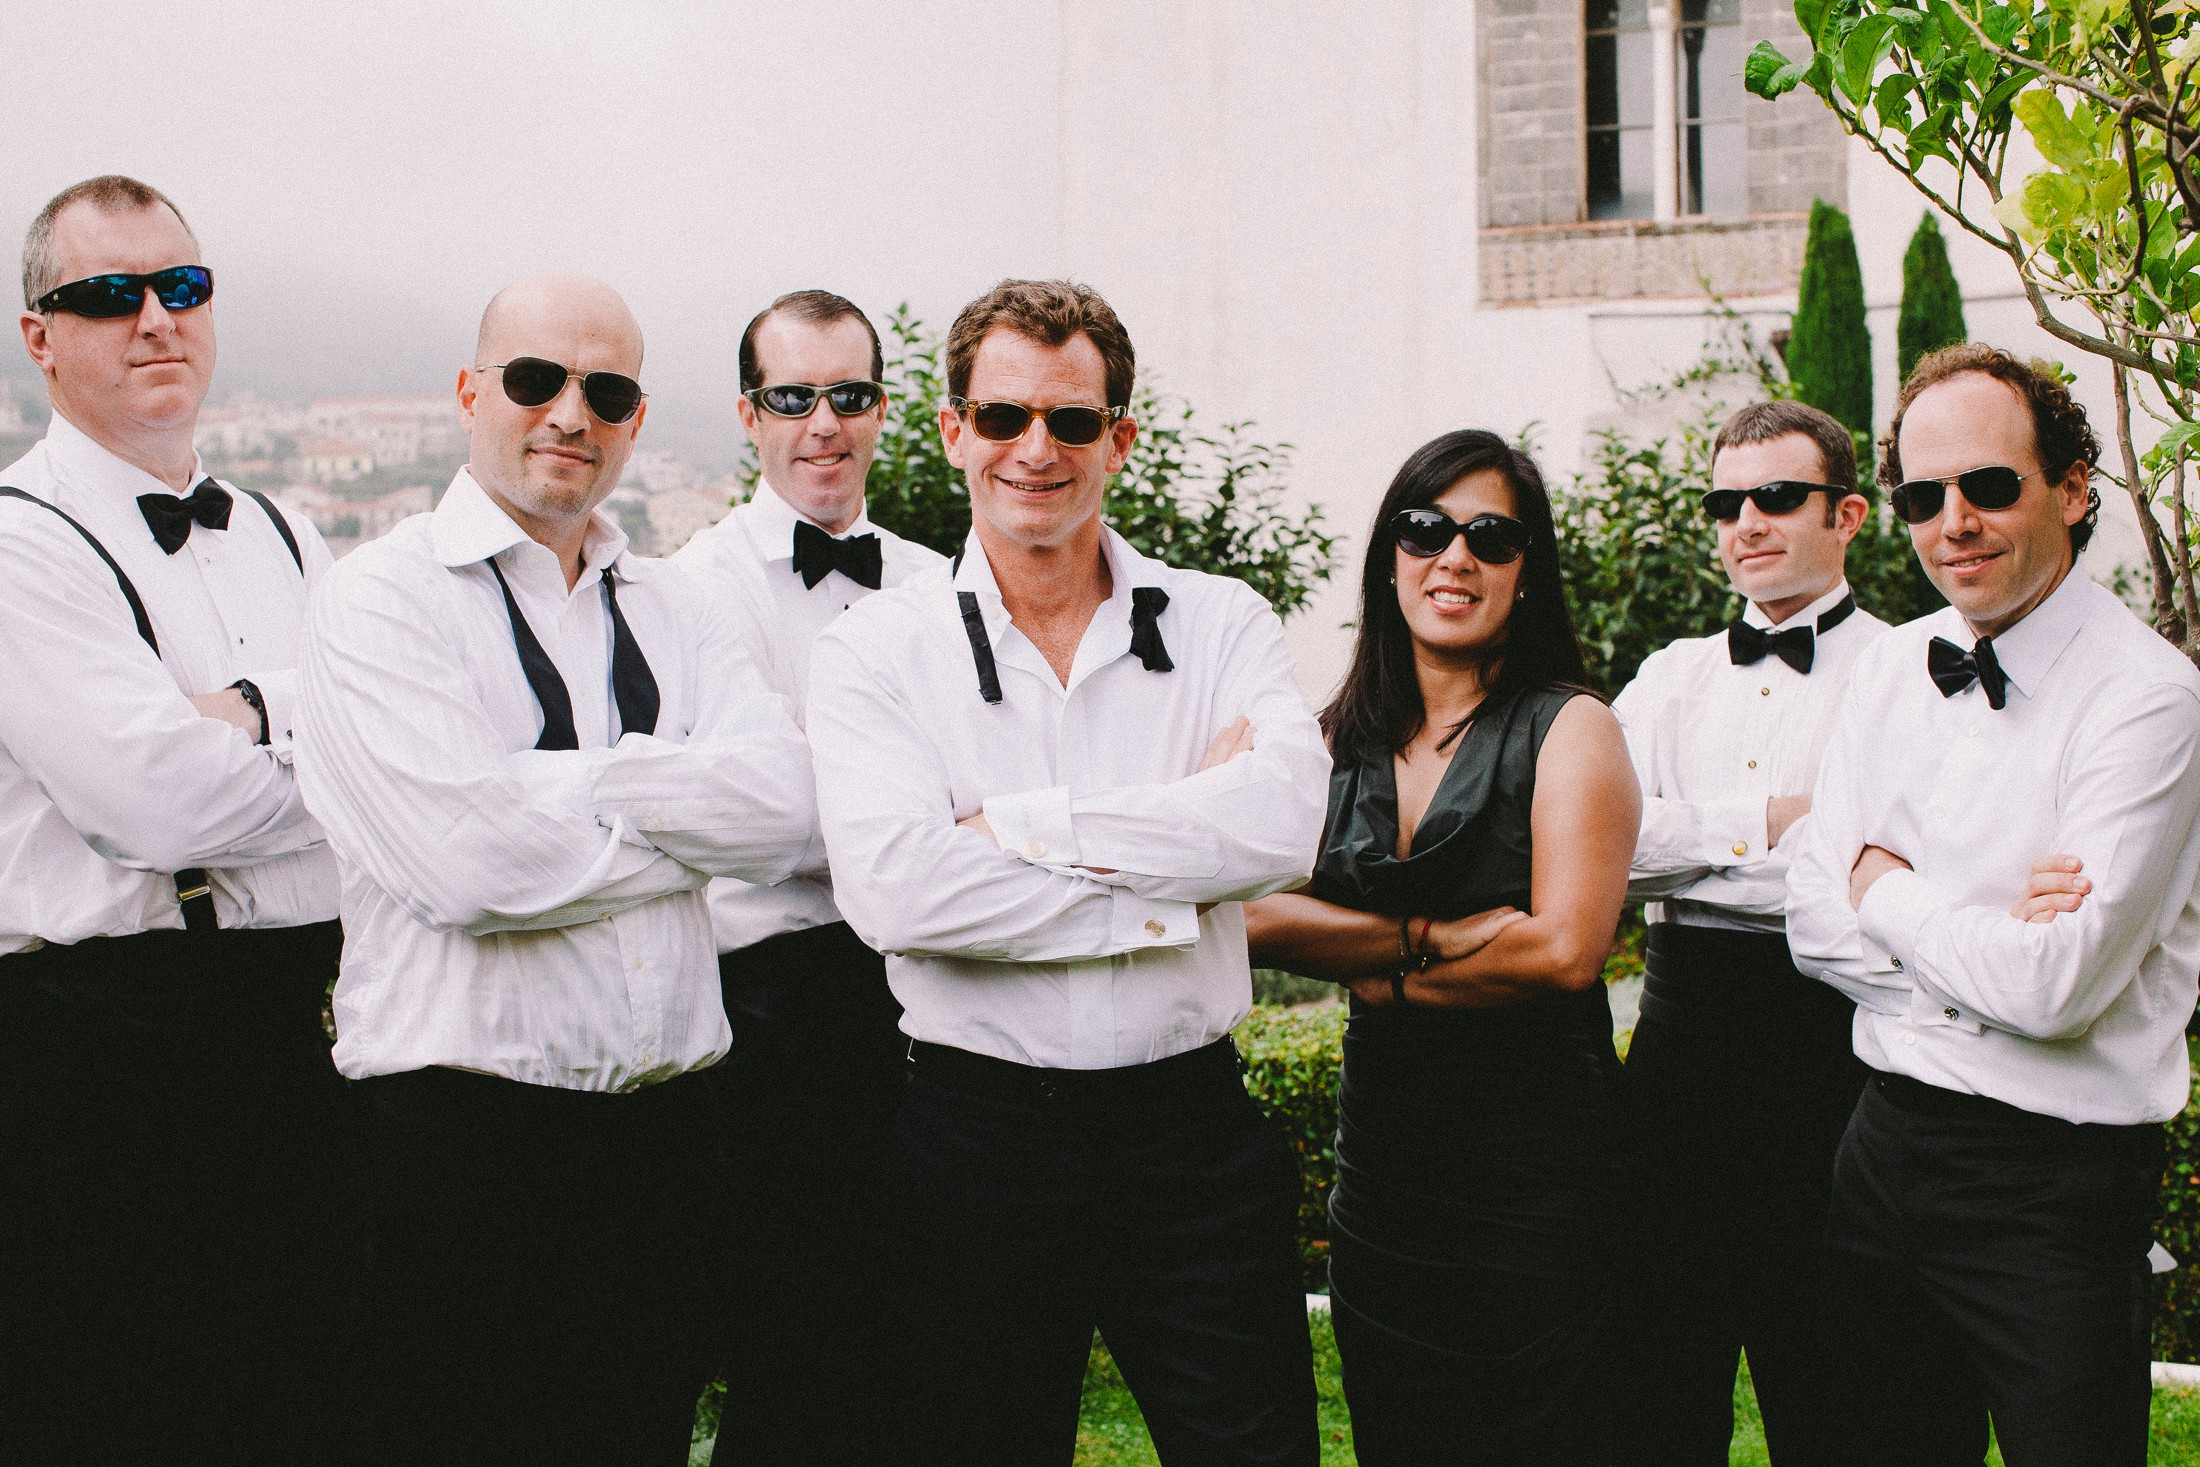 the groom with his best men with sunglasses